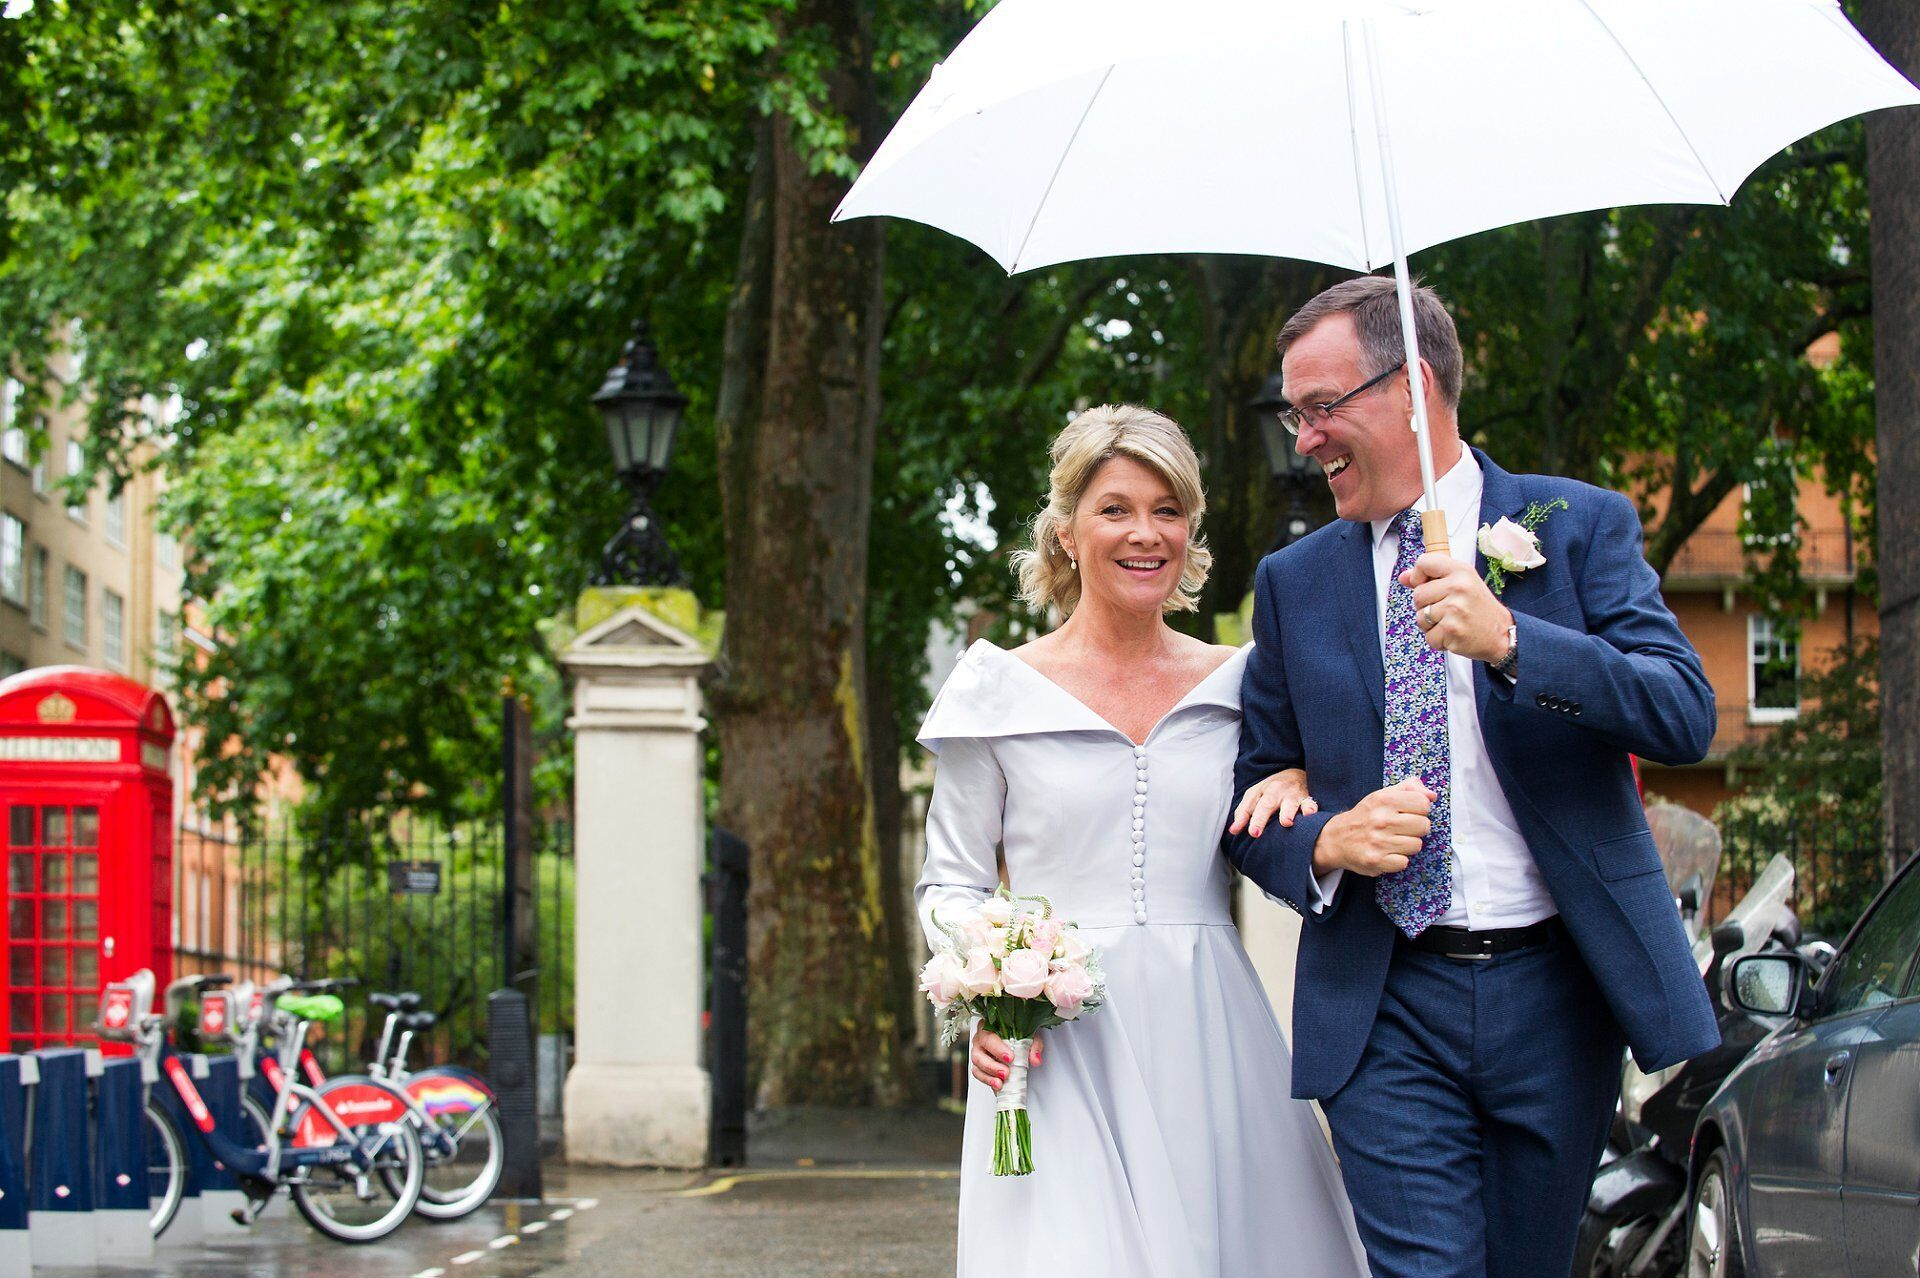 mount street gardens mayfair wedding photographer